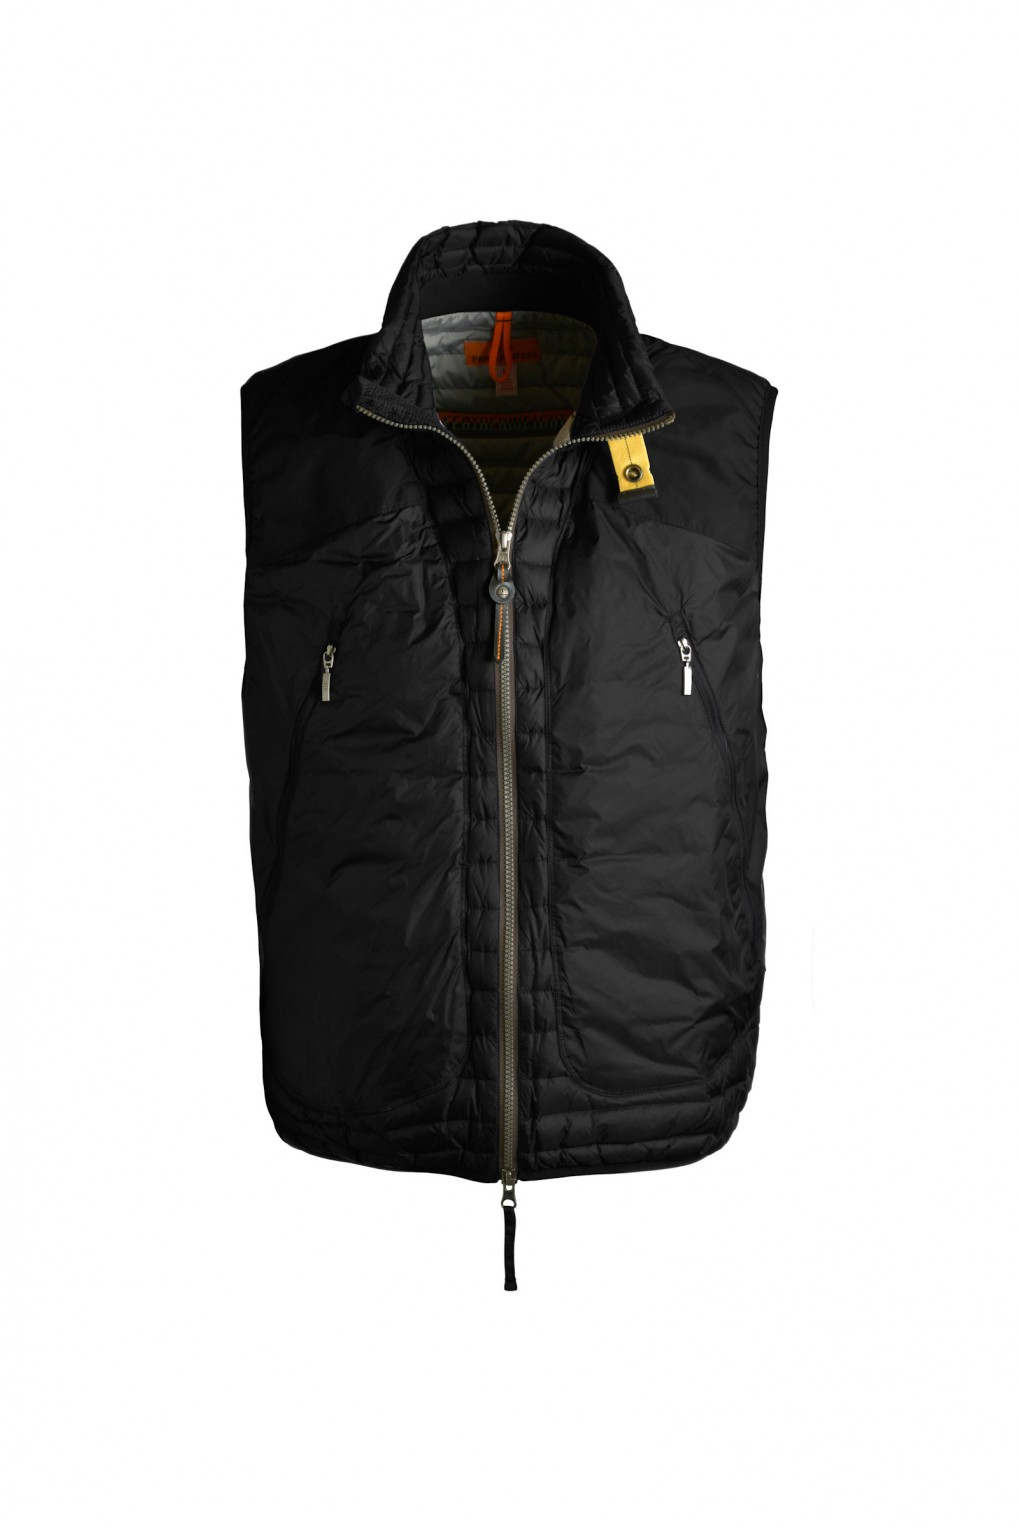 parajumpers HERMANN man outerwear Black